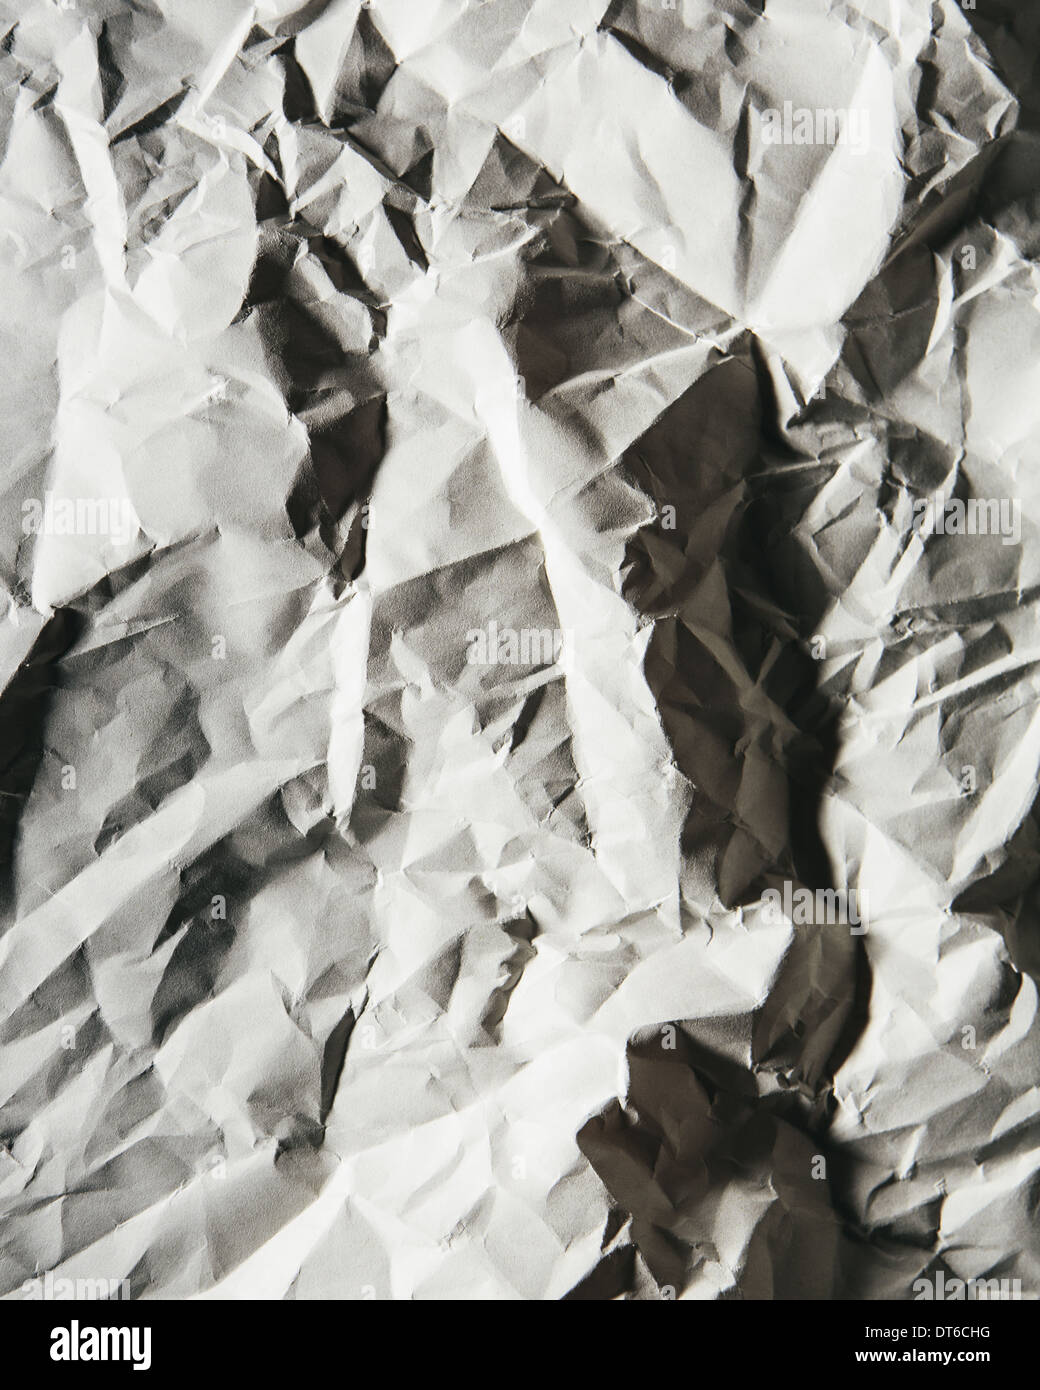 A piece of recycled white paper, crumpled and scrunched up, refuse. - Stock Image